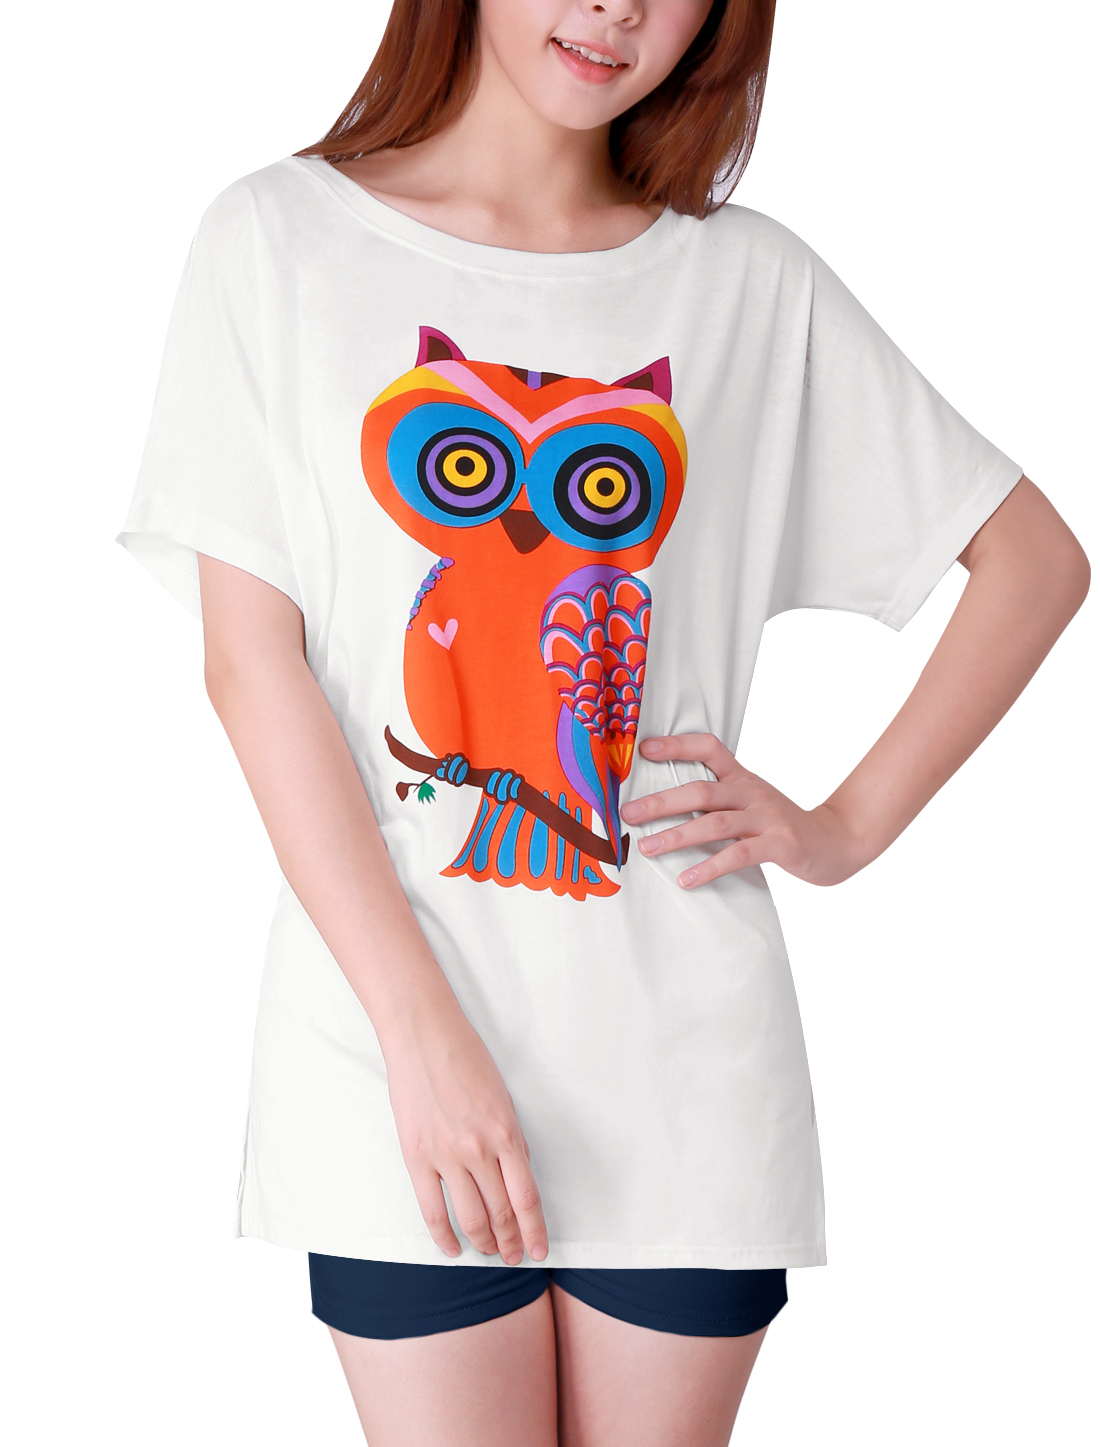 Women New Fashion Cartoon Owl Pattern White Summer Tunic Shirt S